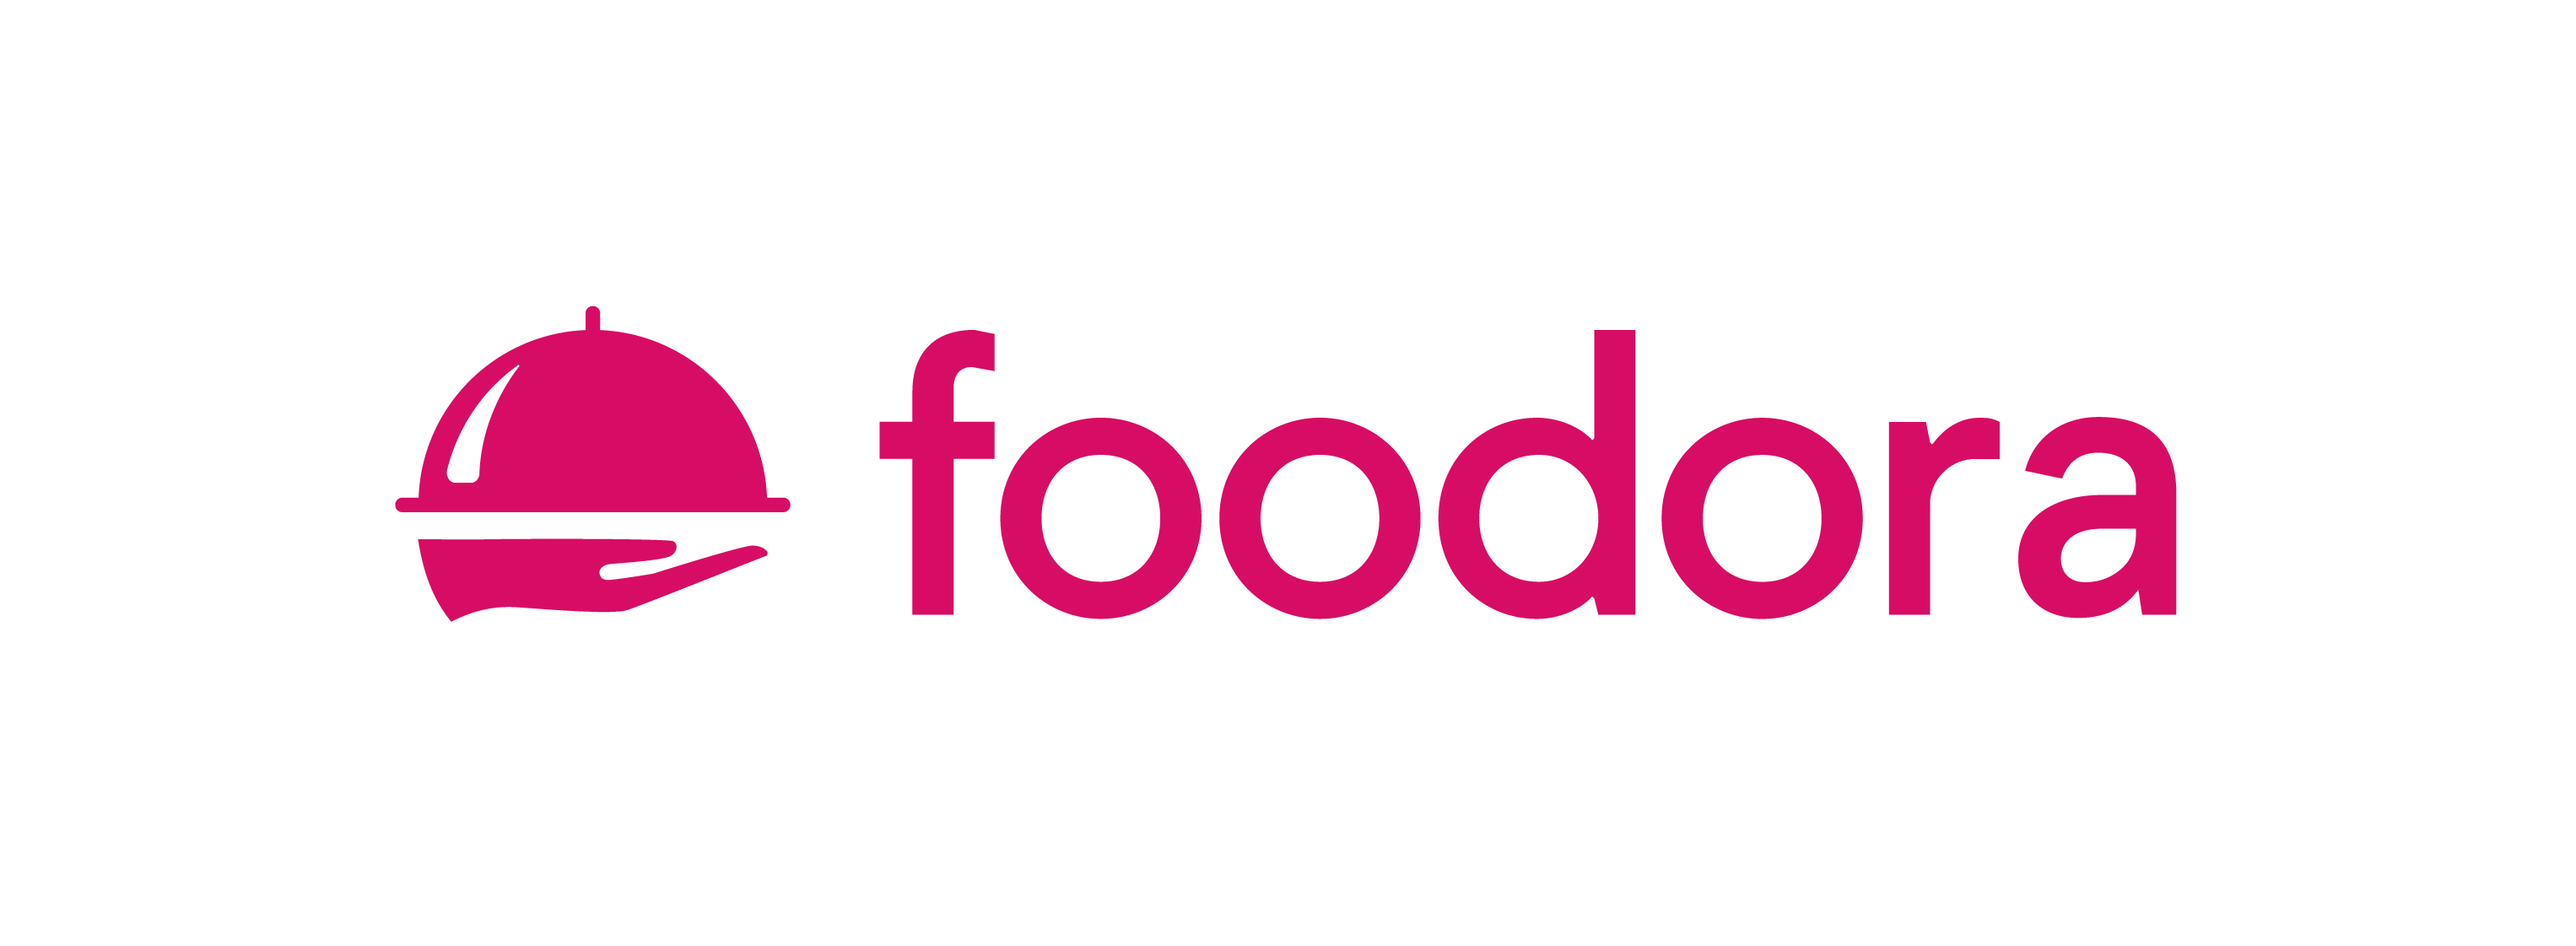 Meet Geoffrey, the autonomous delivery robot: foodora teams up with Tiny Mile on artificially intelligent delivery